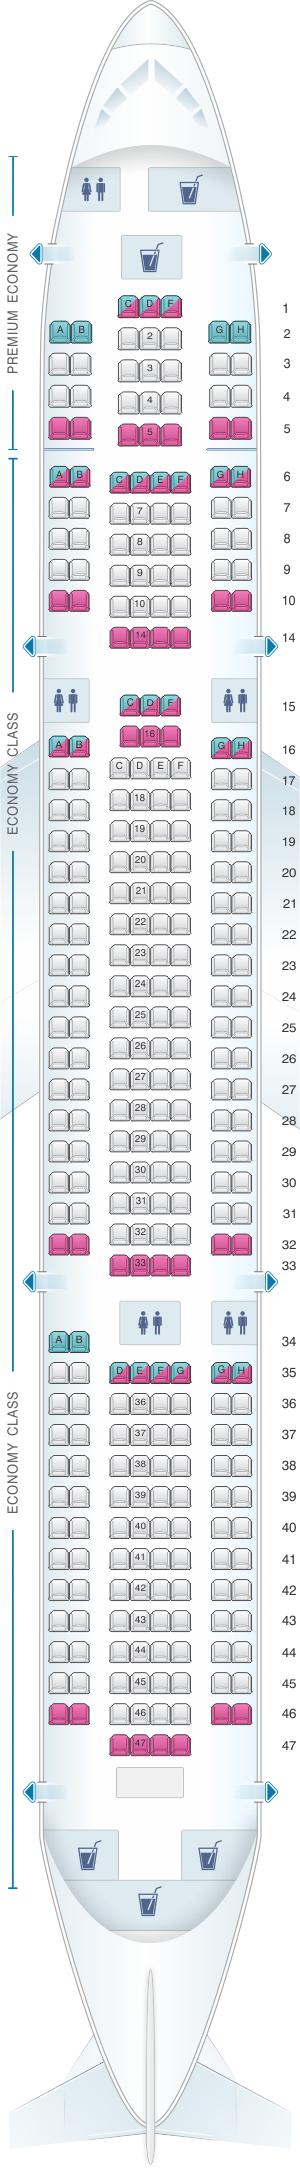 Seat map for TUI Boeing B767-300 283 pax